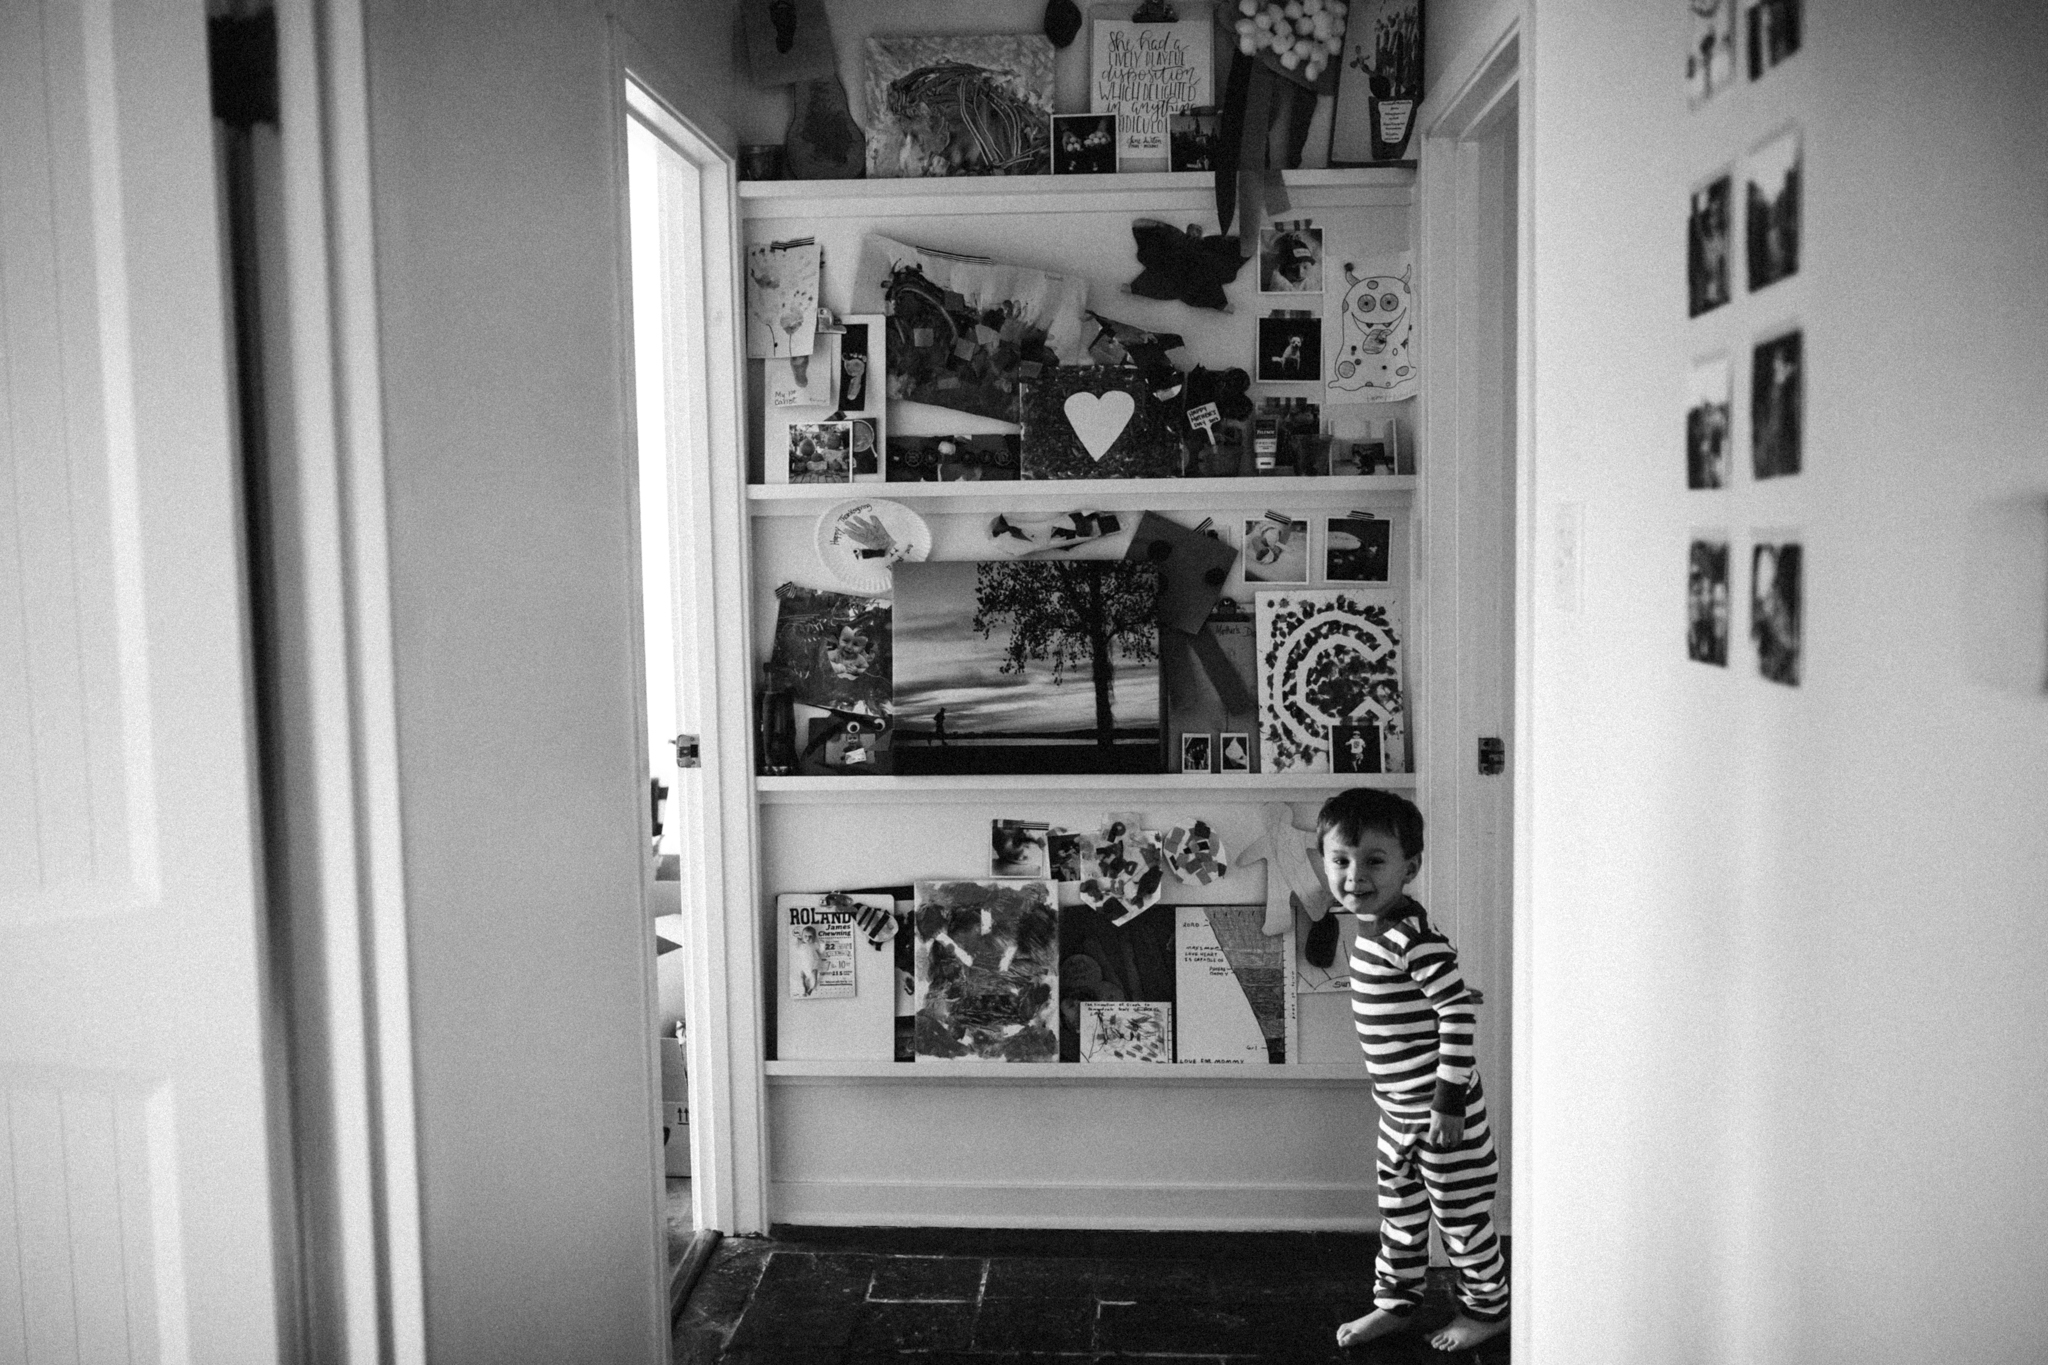 memphis-family-photographer-in-home-thewarmtharoundyou (110 of 140).jpg